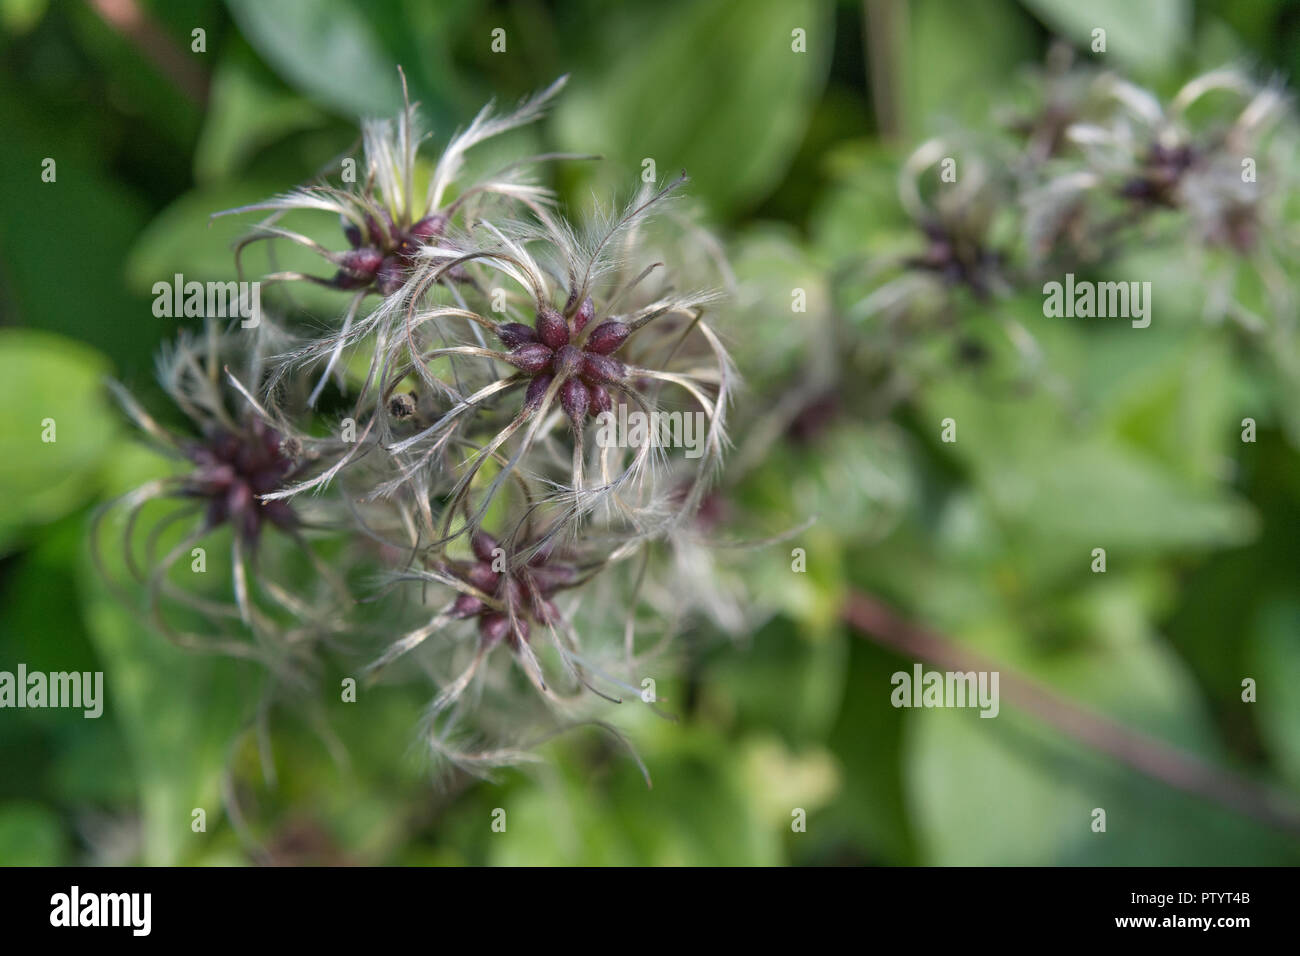 Traveller's Joy / Clematis vitalba - Wild Clematis - in flower. Parts of C. vitalba used as a medicinal plant in herbal remedies. - Stock Image